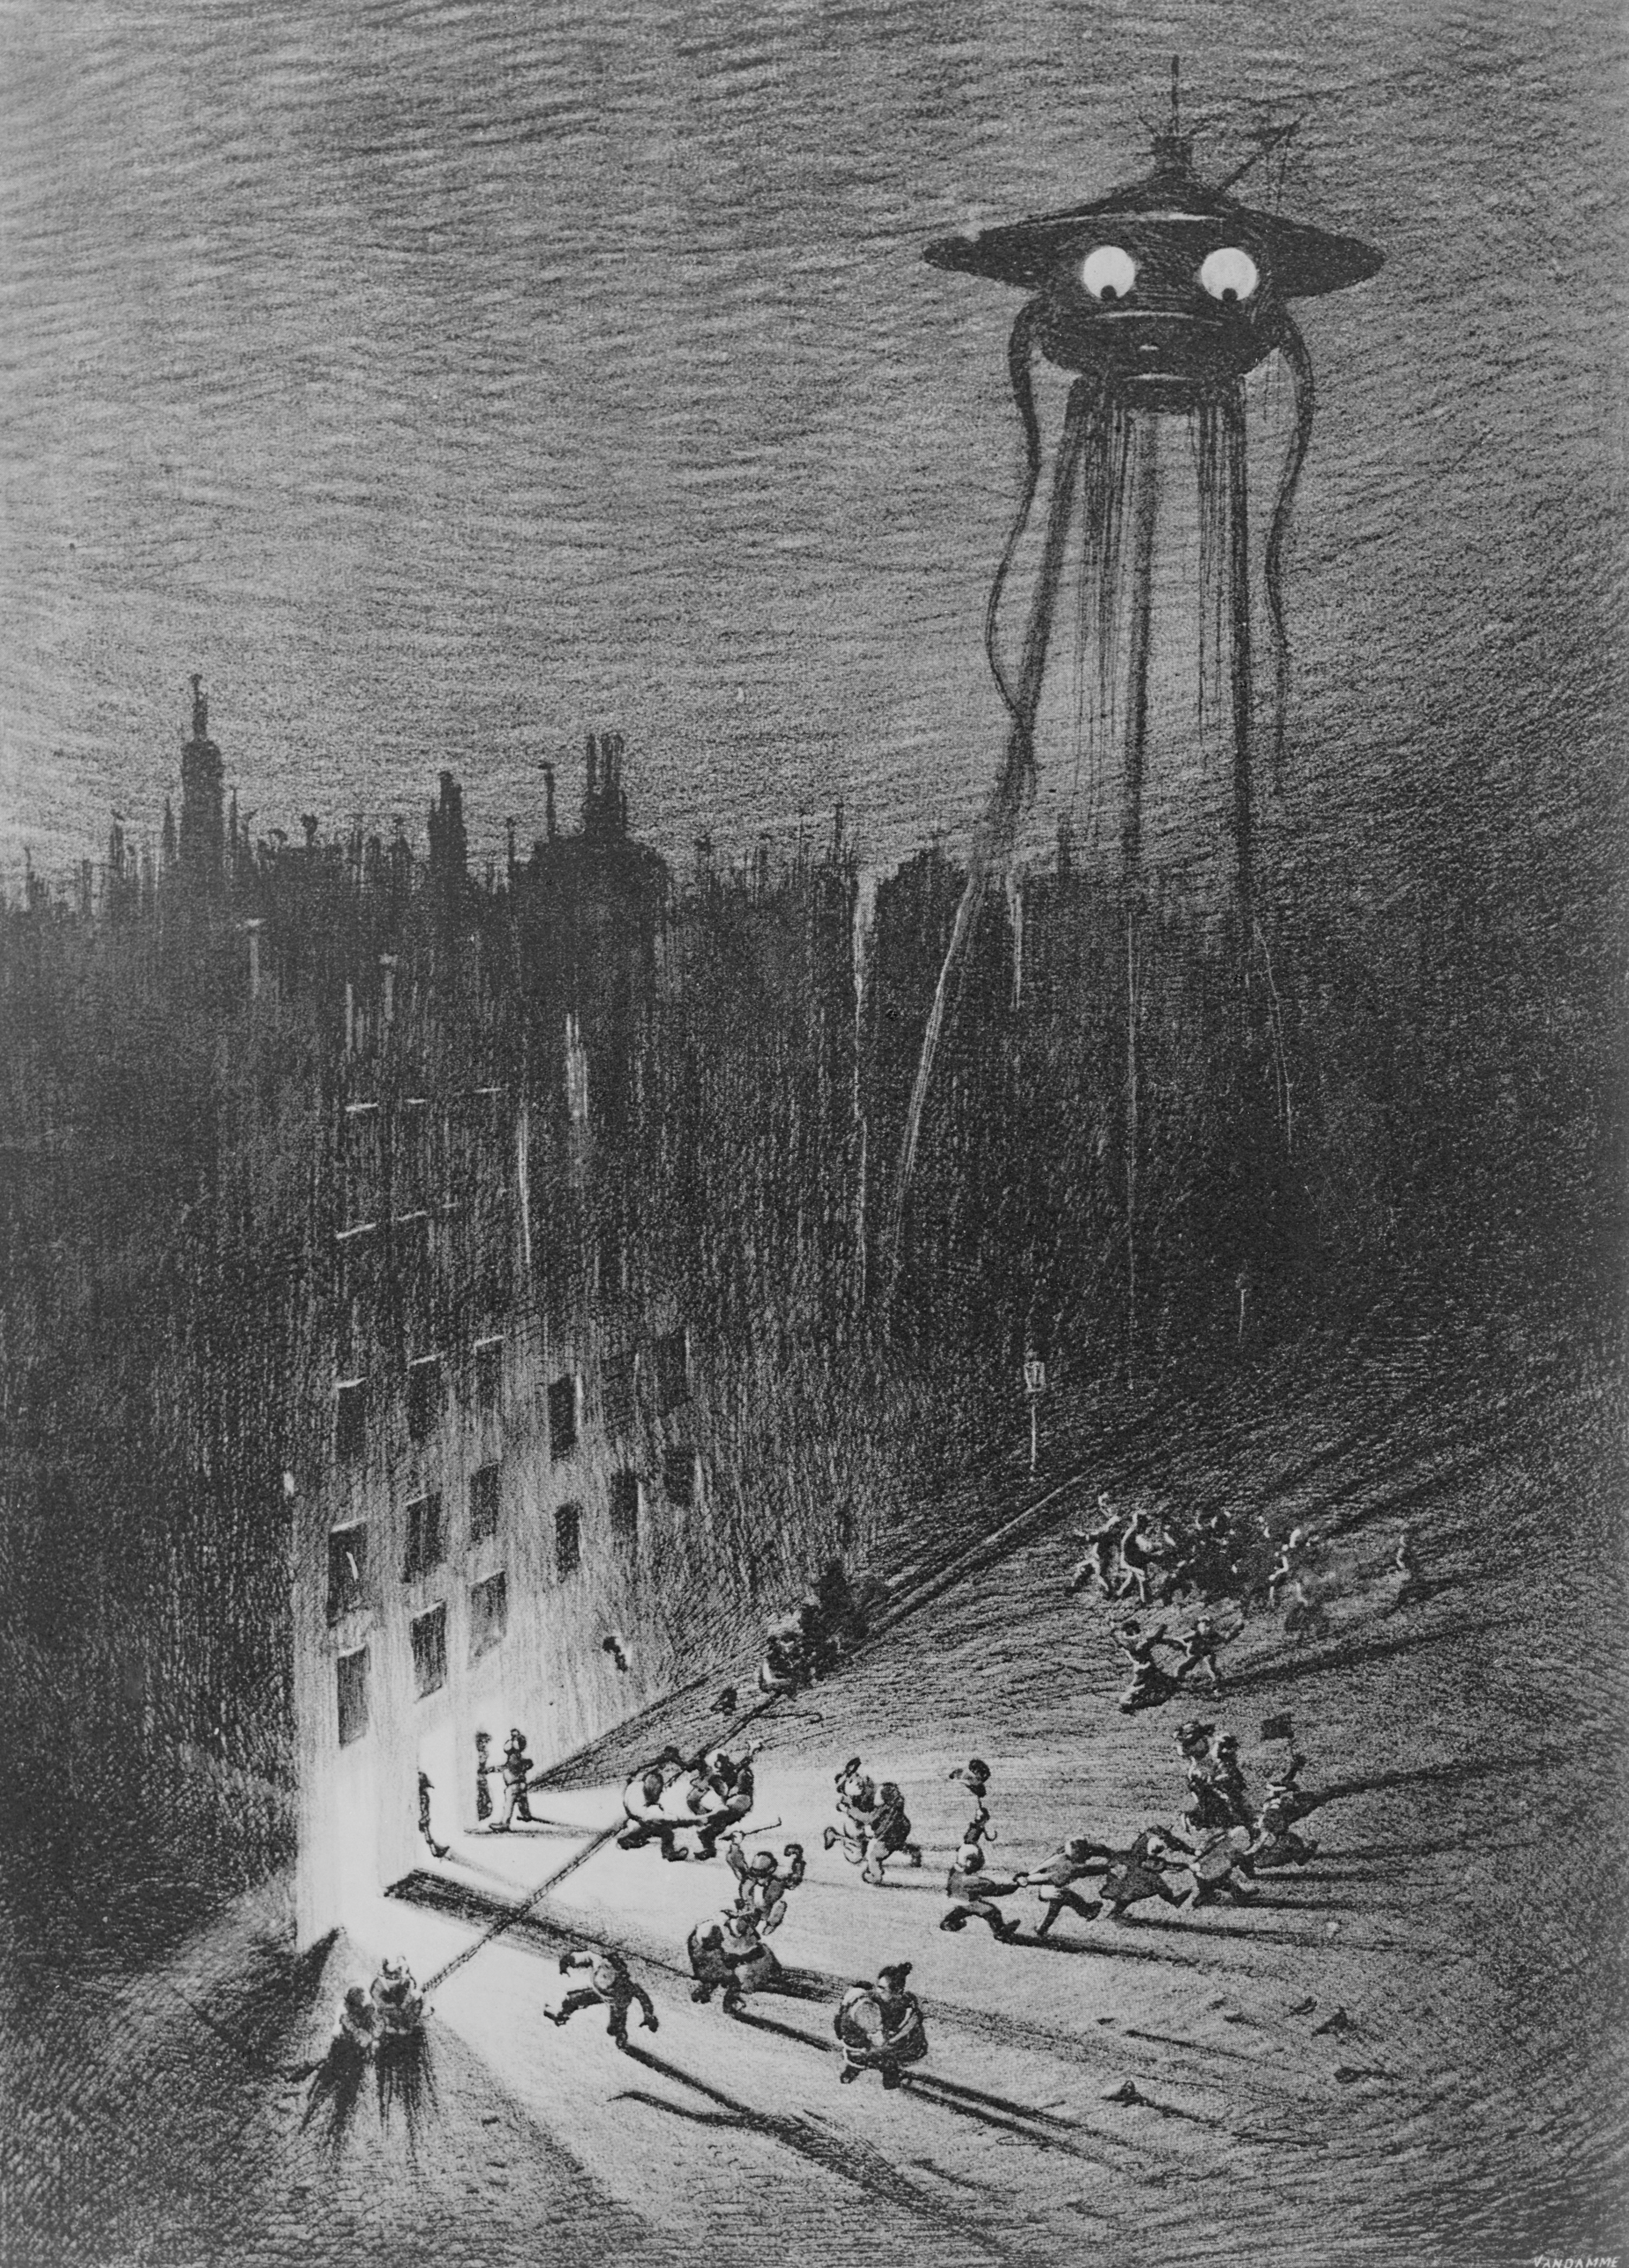 An illustration of a Martian fighting machine hovering over Londoners in Regent Street and Piccadilly, from a 1906 edition of The War of the Worlds by H.G. Wells.